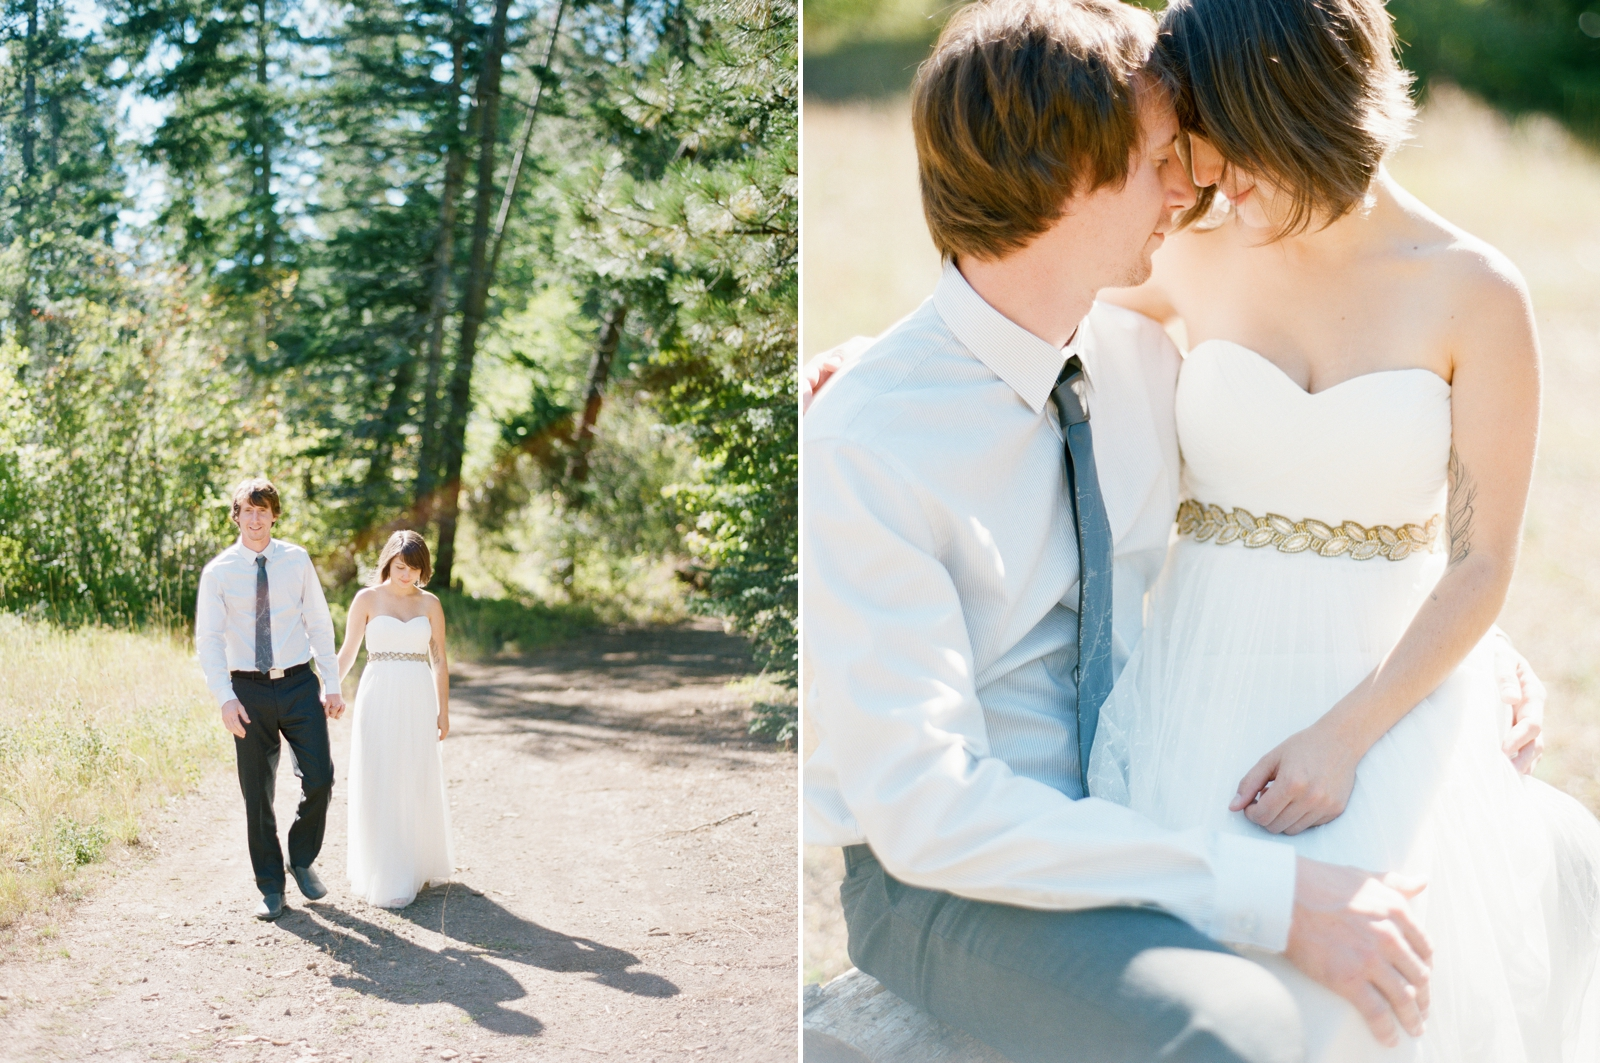 mt hood wedding photographer mt hood oregon wedding photographer shannon griffin_0042.jpg